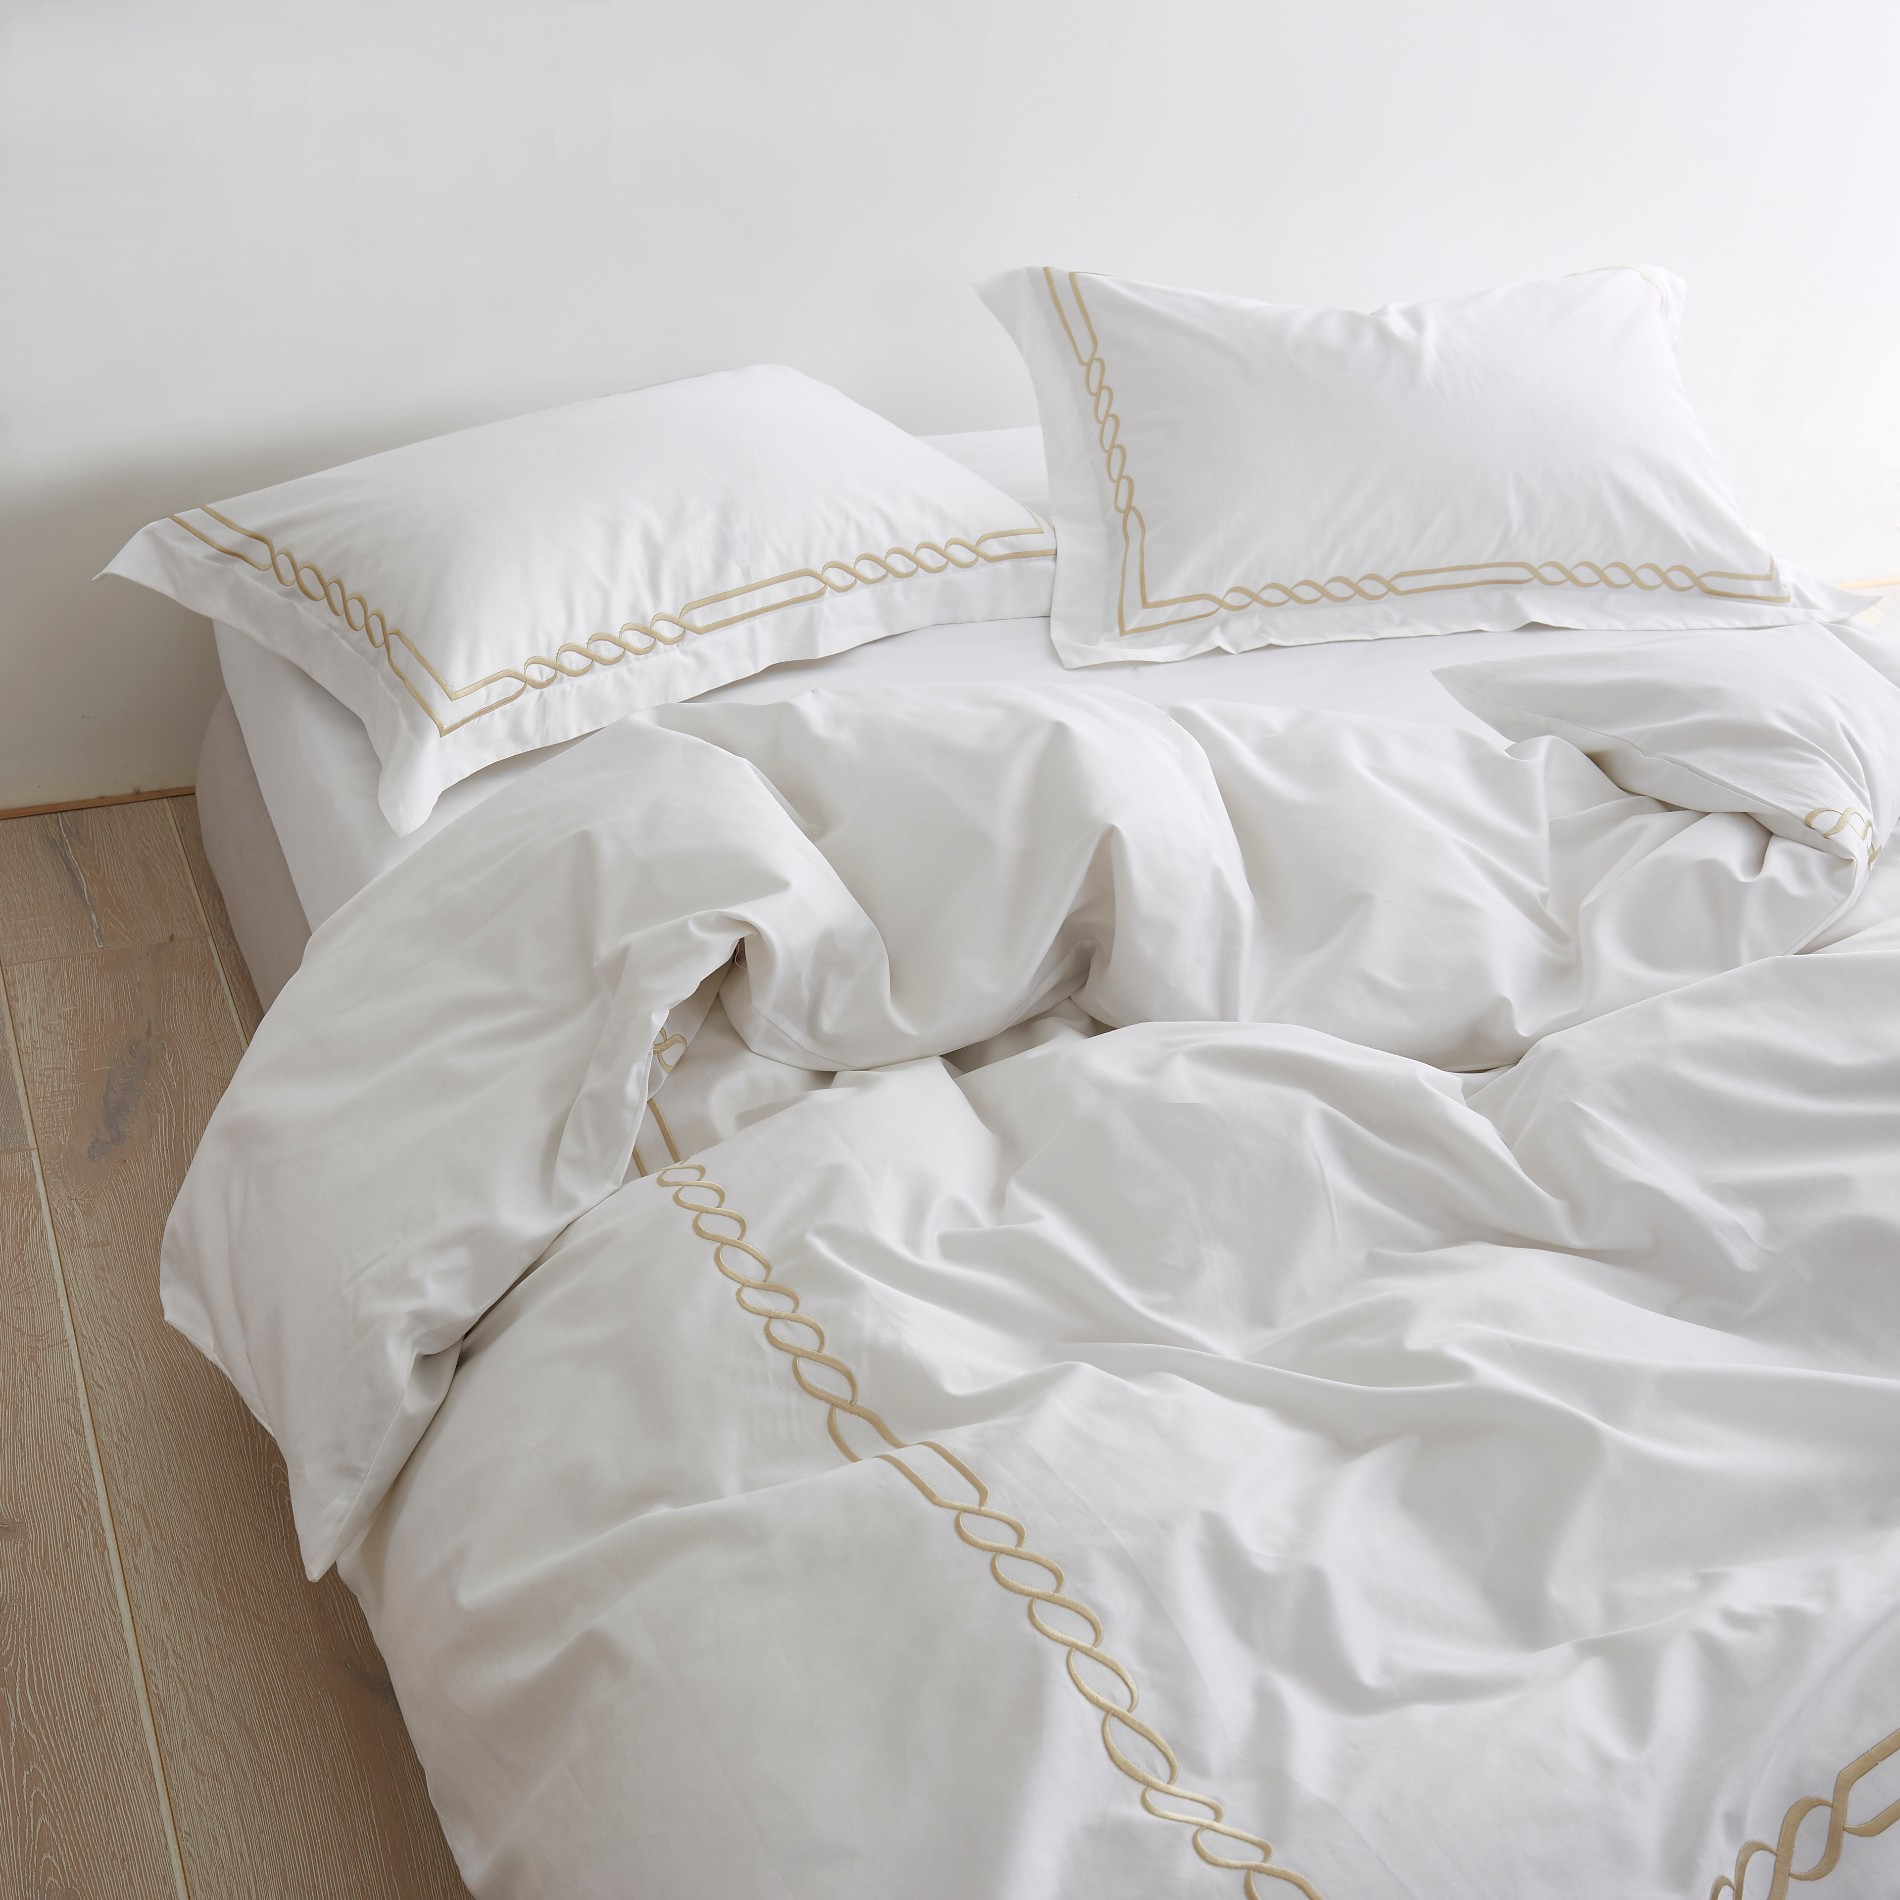 Hotel Textile Bed Linen Manufacturers, Hotel Textile Bed Linen Factory, Supply Hotel Textile Bed Linen